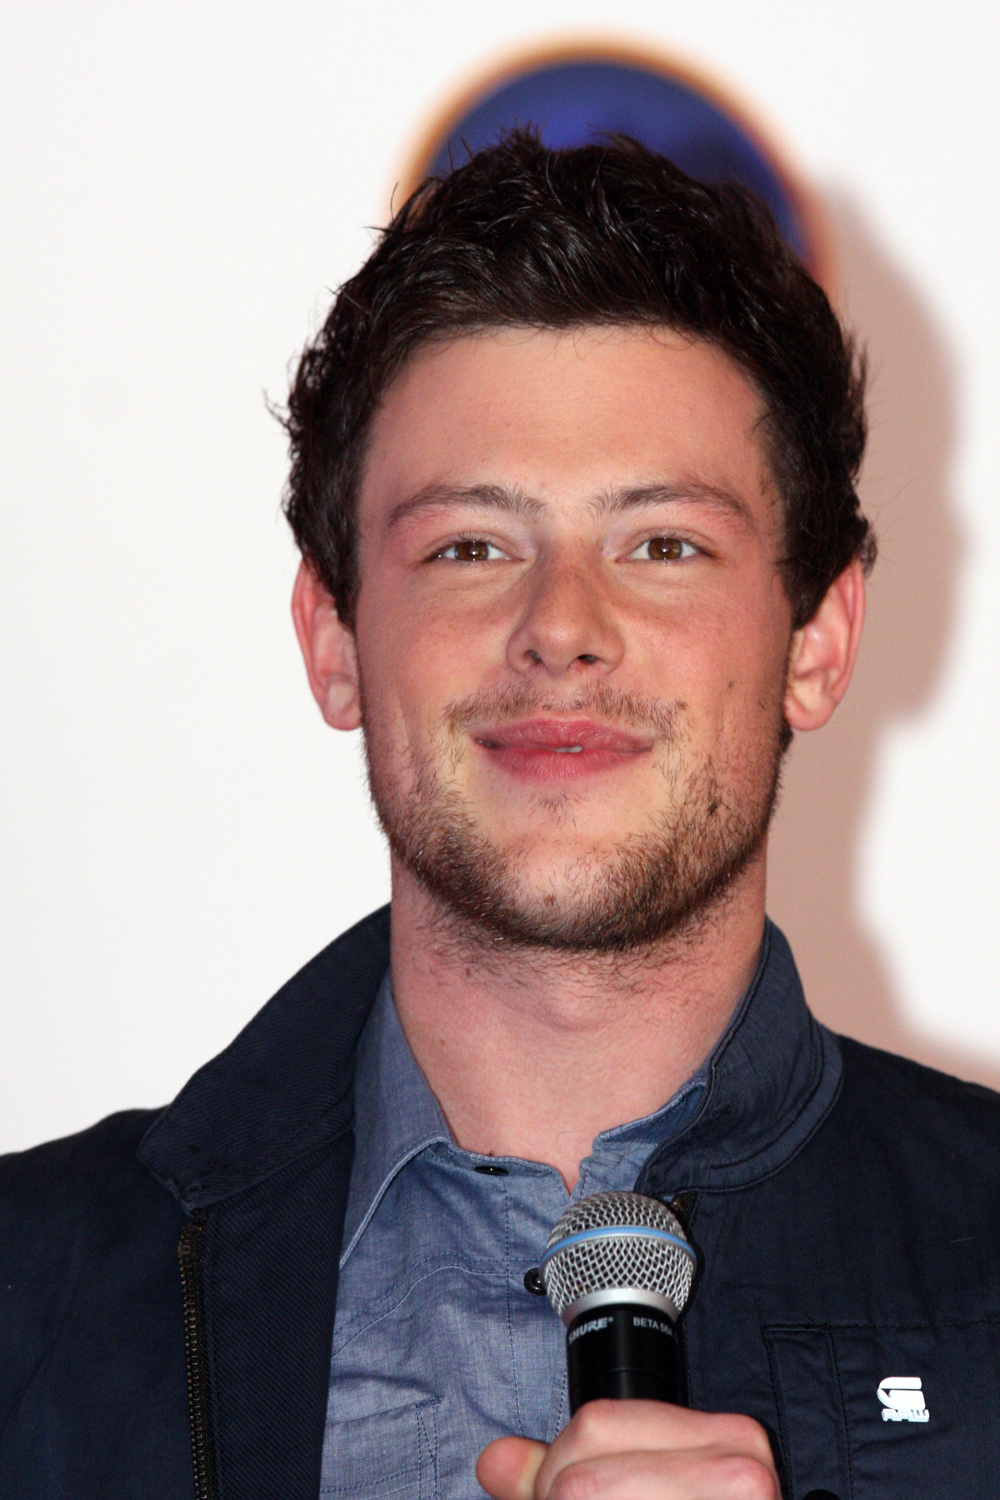 Forum on this topic: Saugat Malla, cory-monteith/